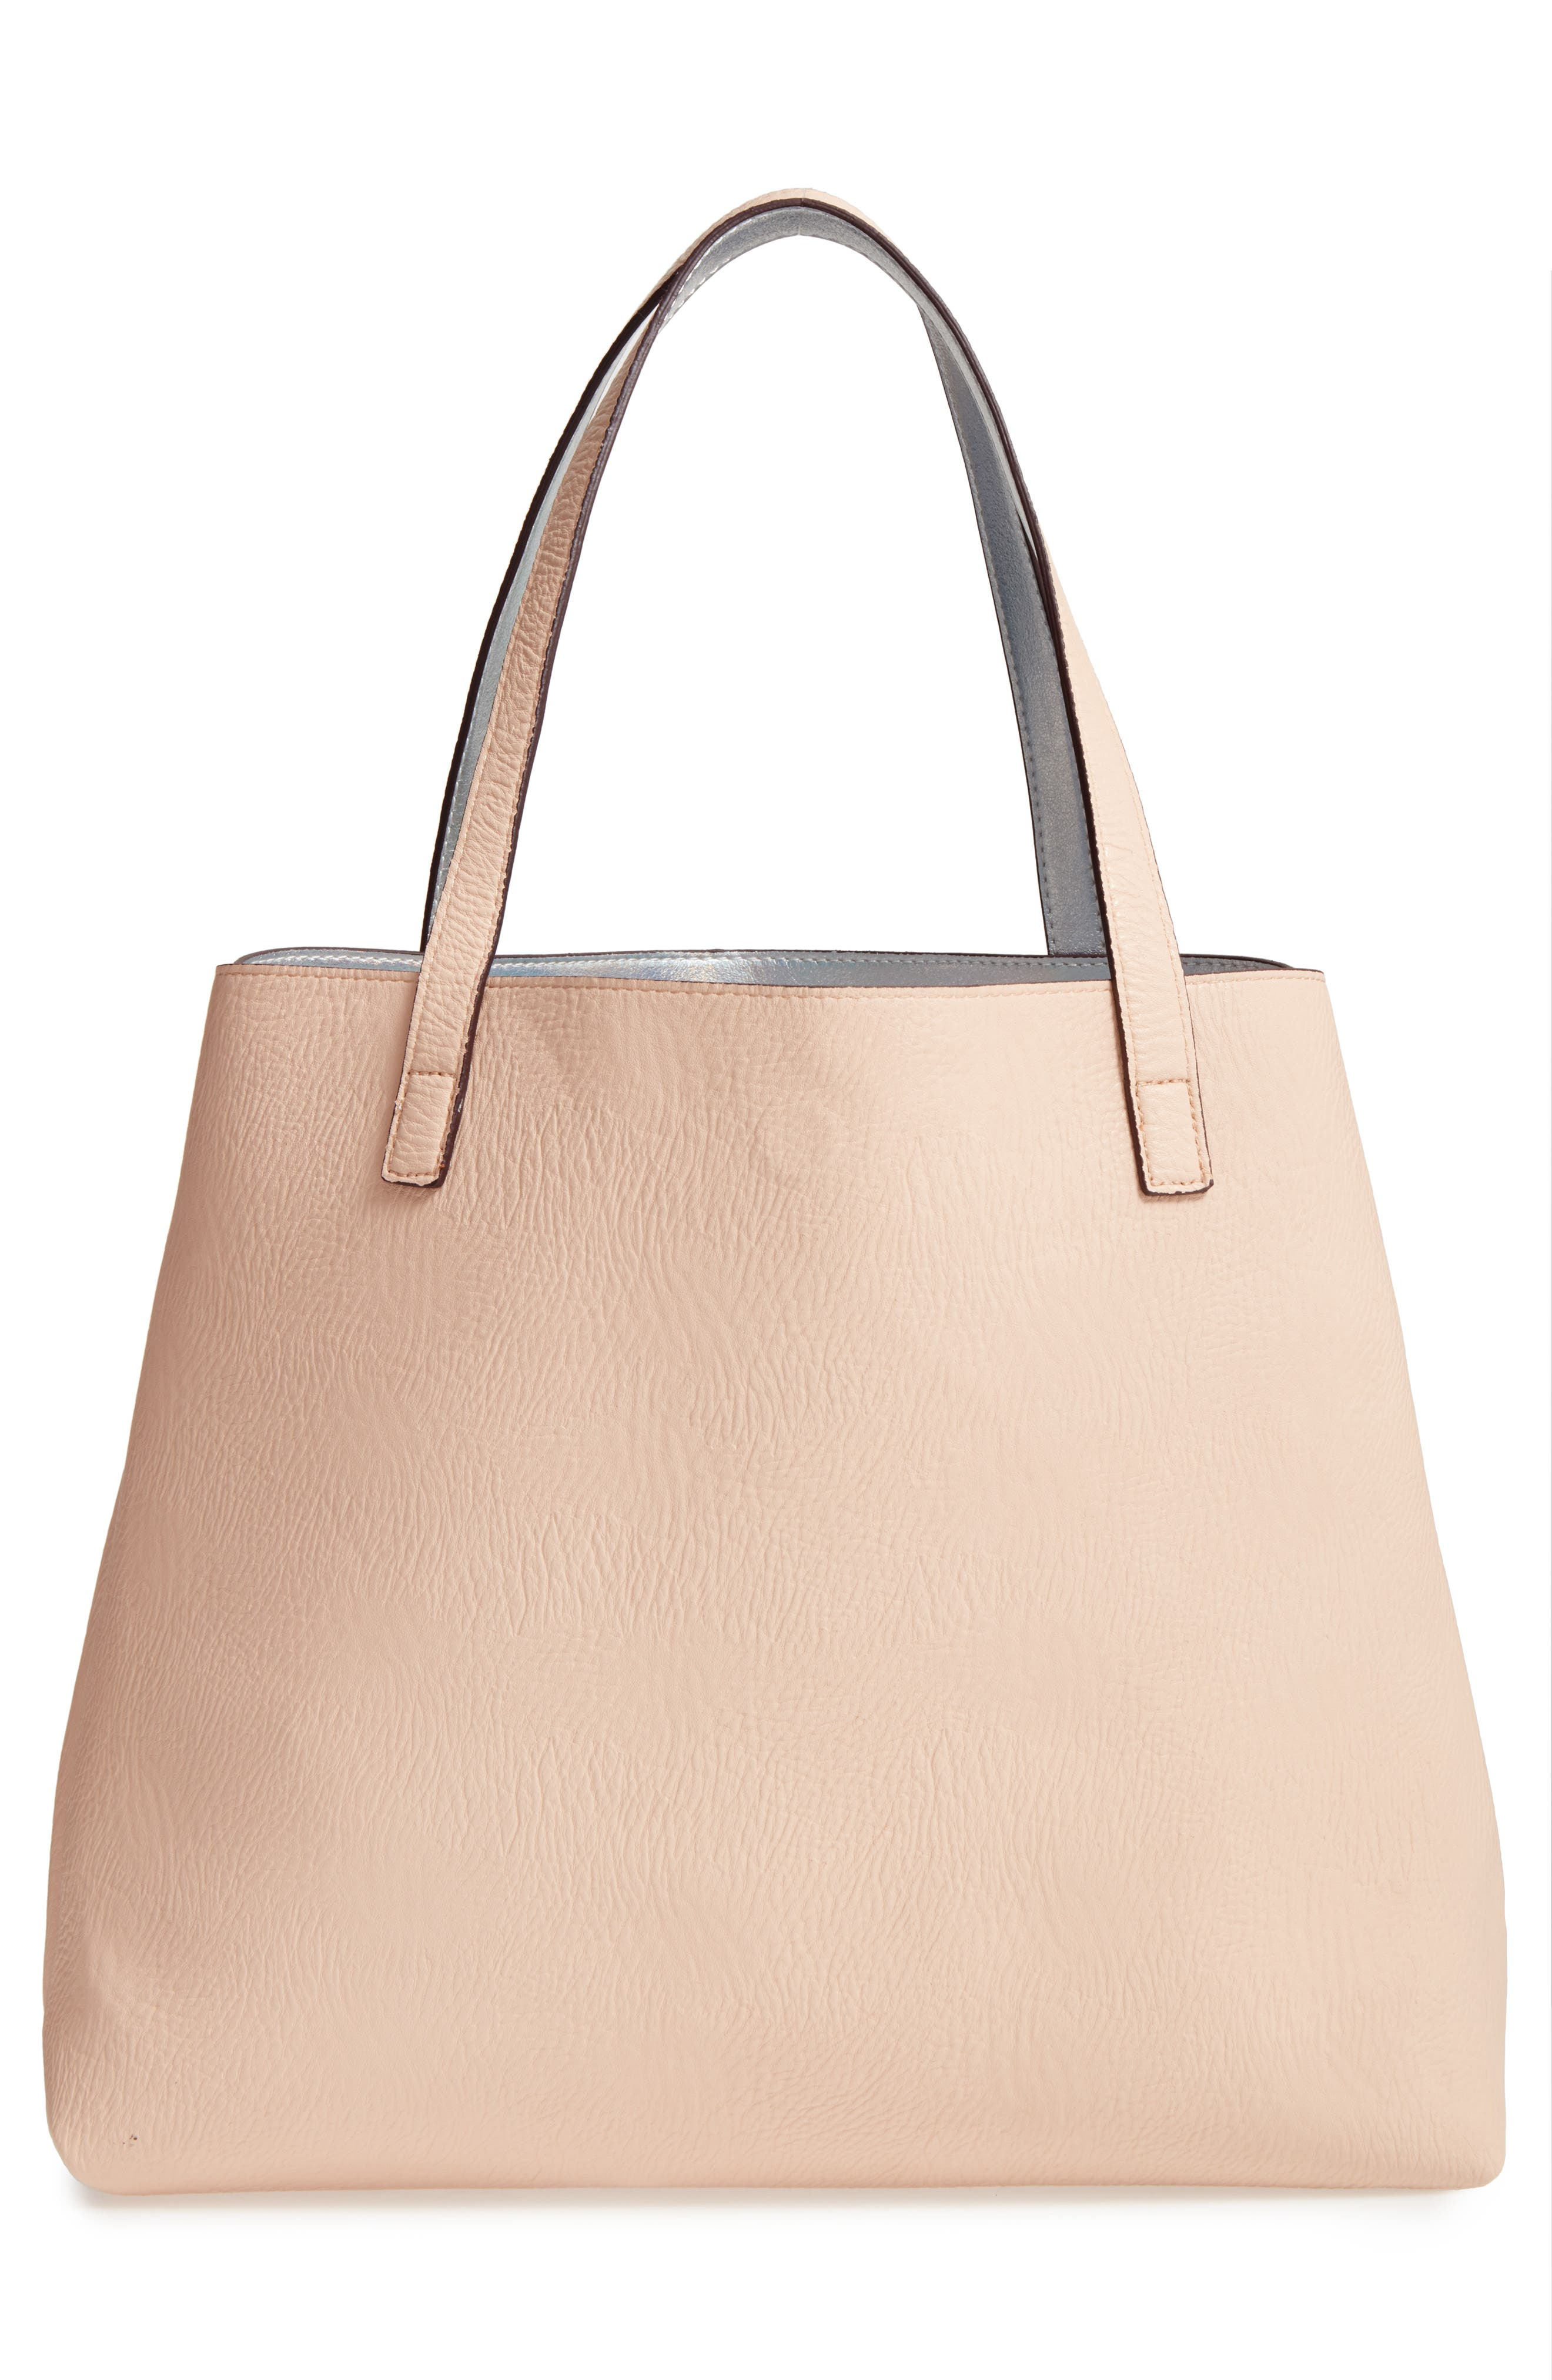 Street Level Reversible Faux Leather Tote & Wristlet   Nordstrom